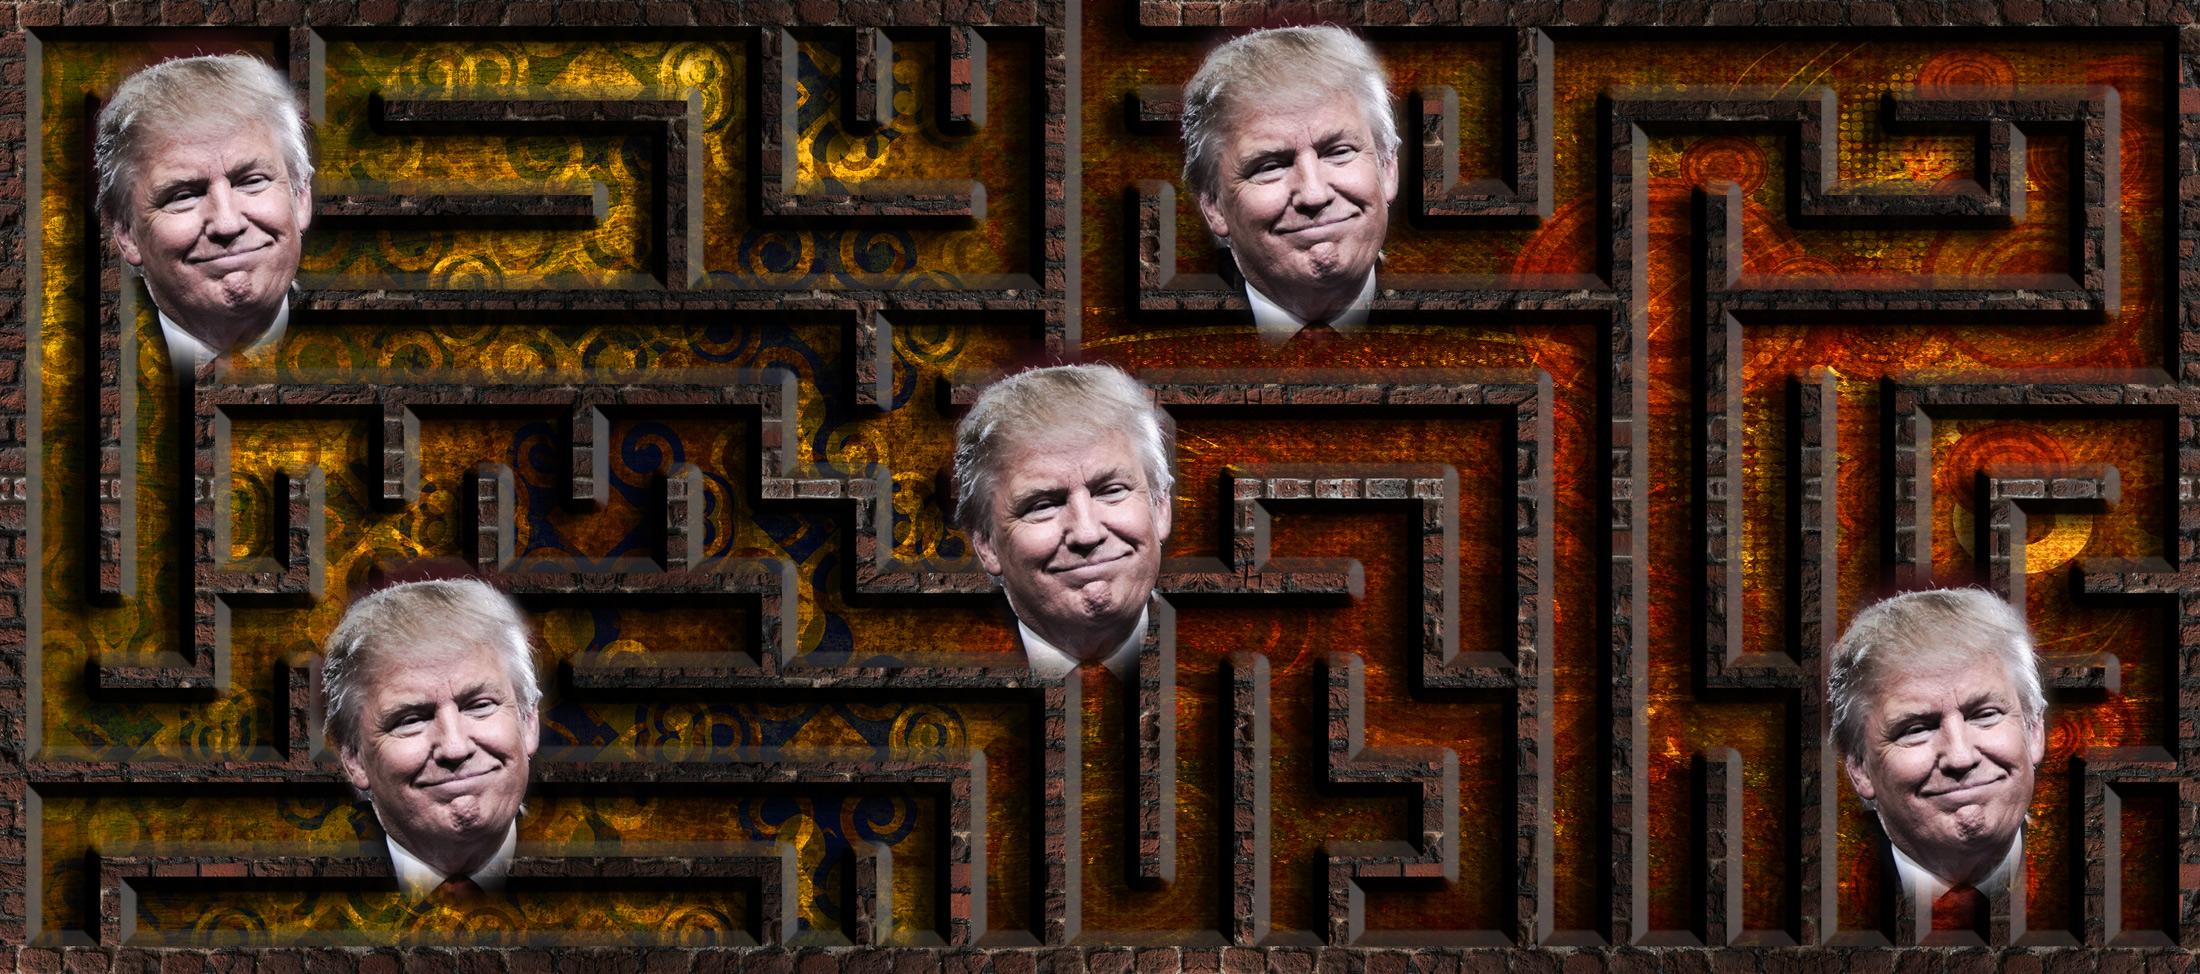 Trumps Labyrinth der Lügen